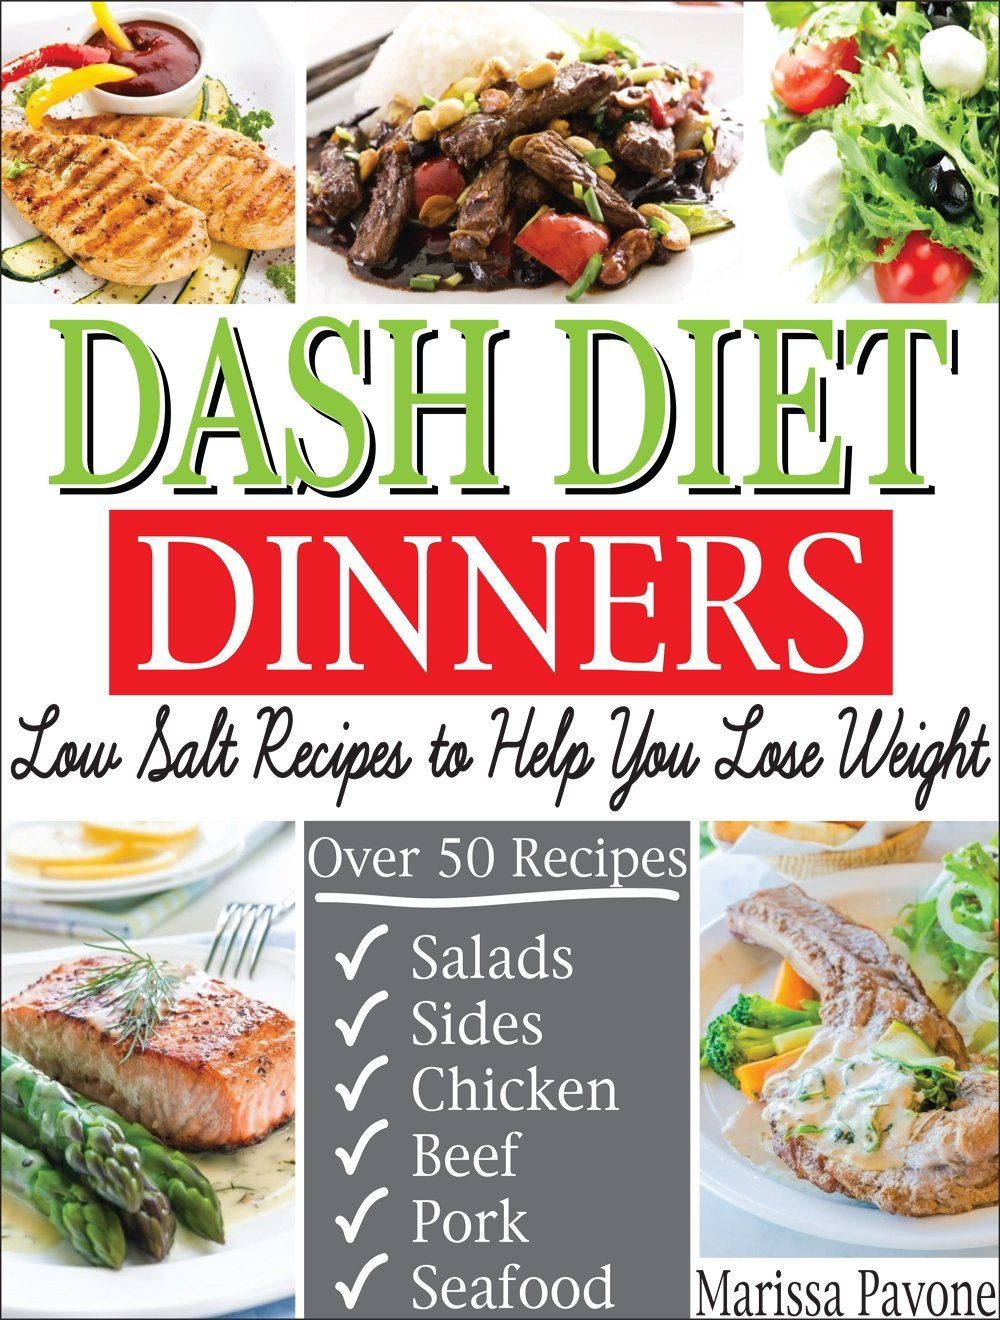 Dash diet dinners low salt recipes to help you lose weight lower dash diet dinners low salt recipes to help you lose weight lower blood pressure forumfinder Image collections